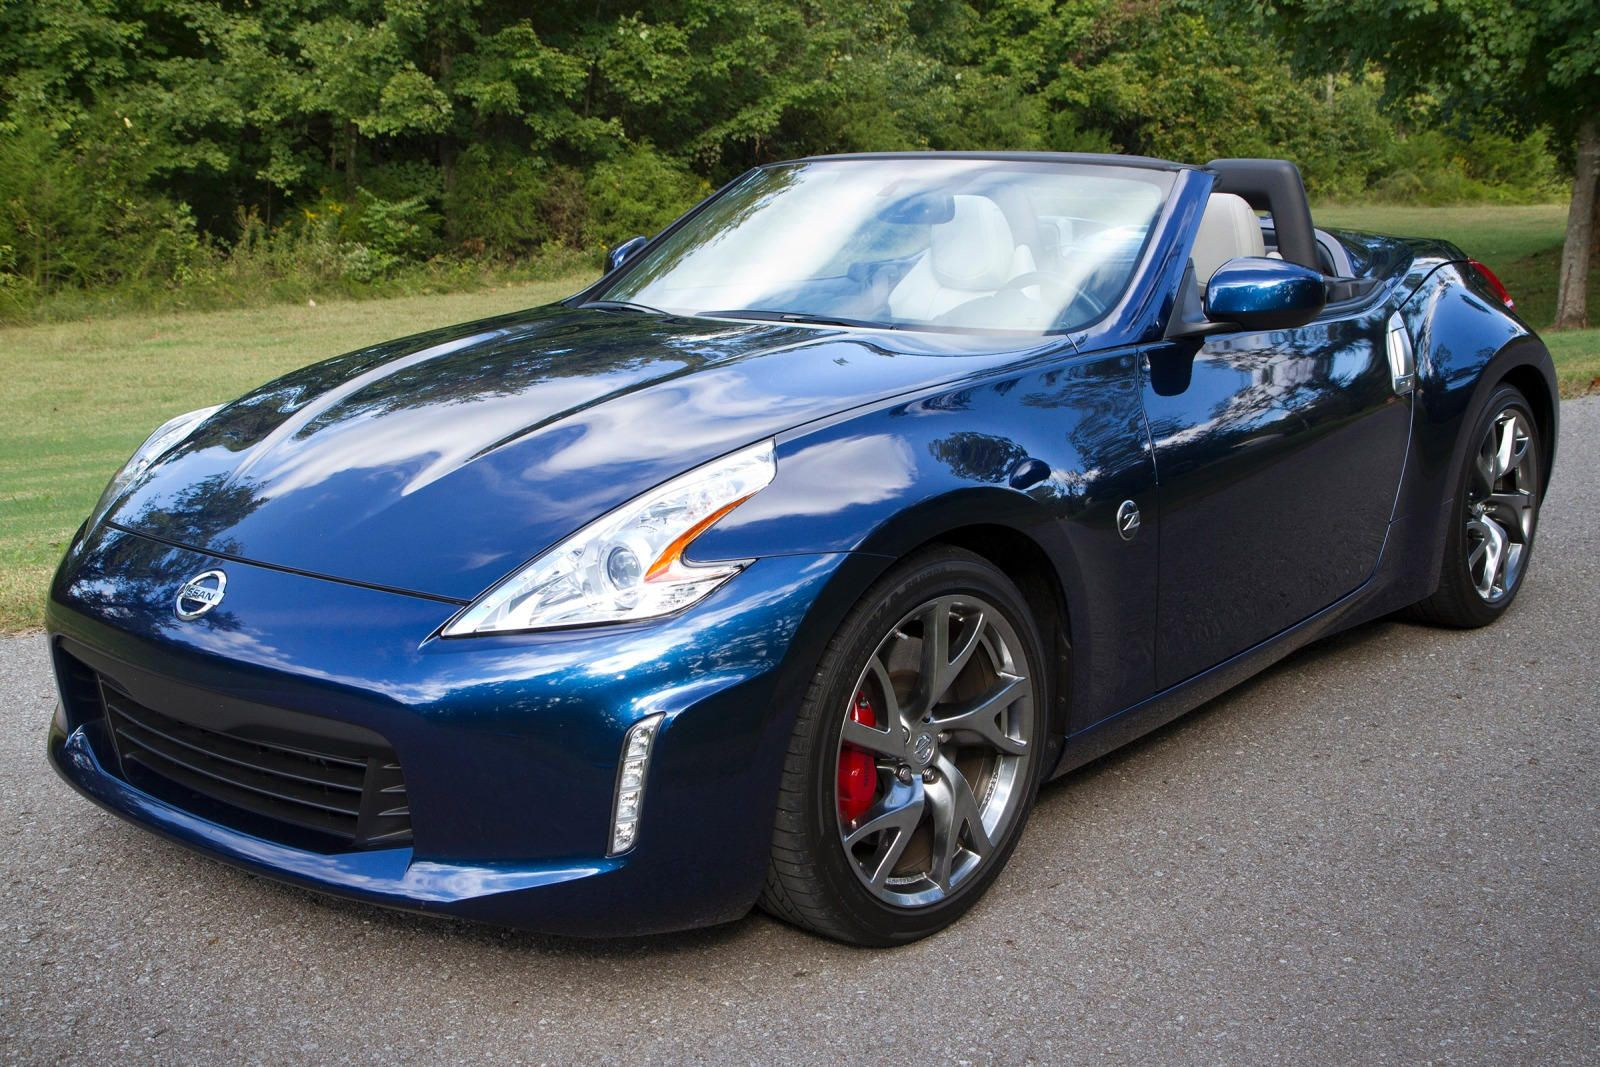 Check Out The New Nissan 370z Roadster Test Drive Review Price Details Trims And Specs O In 2020 Nissan 370z Nissan 370z Convertible Nissan 350z Convertible